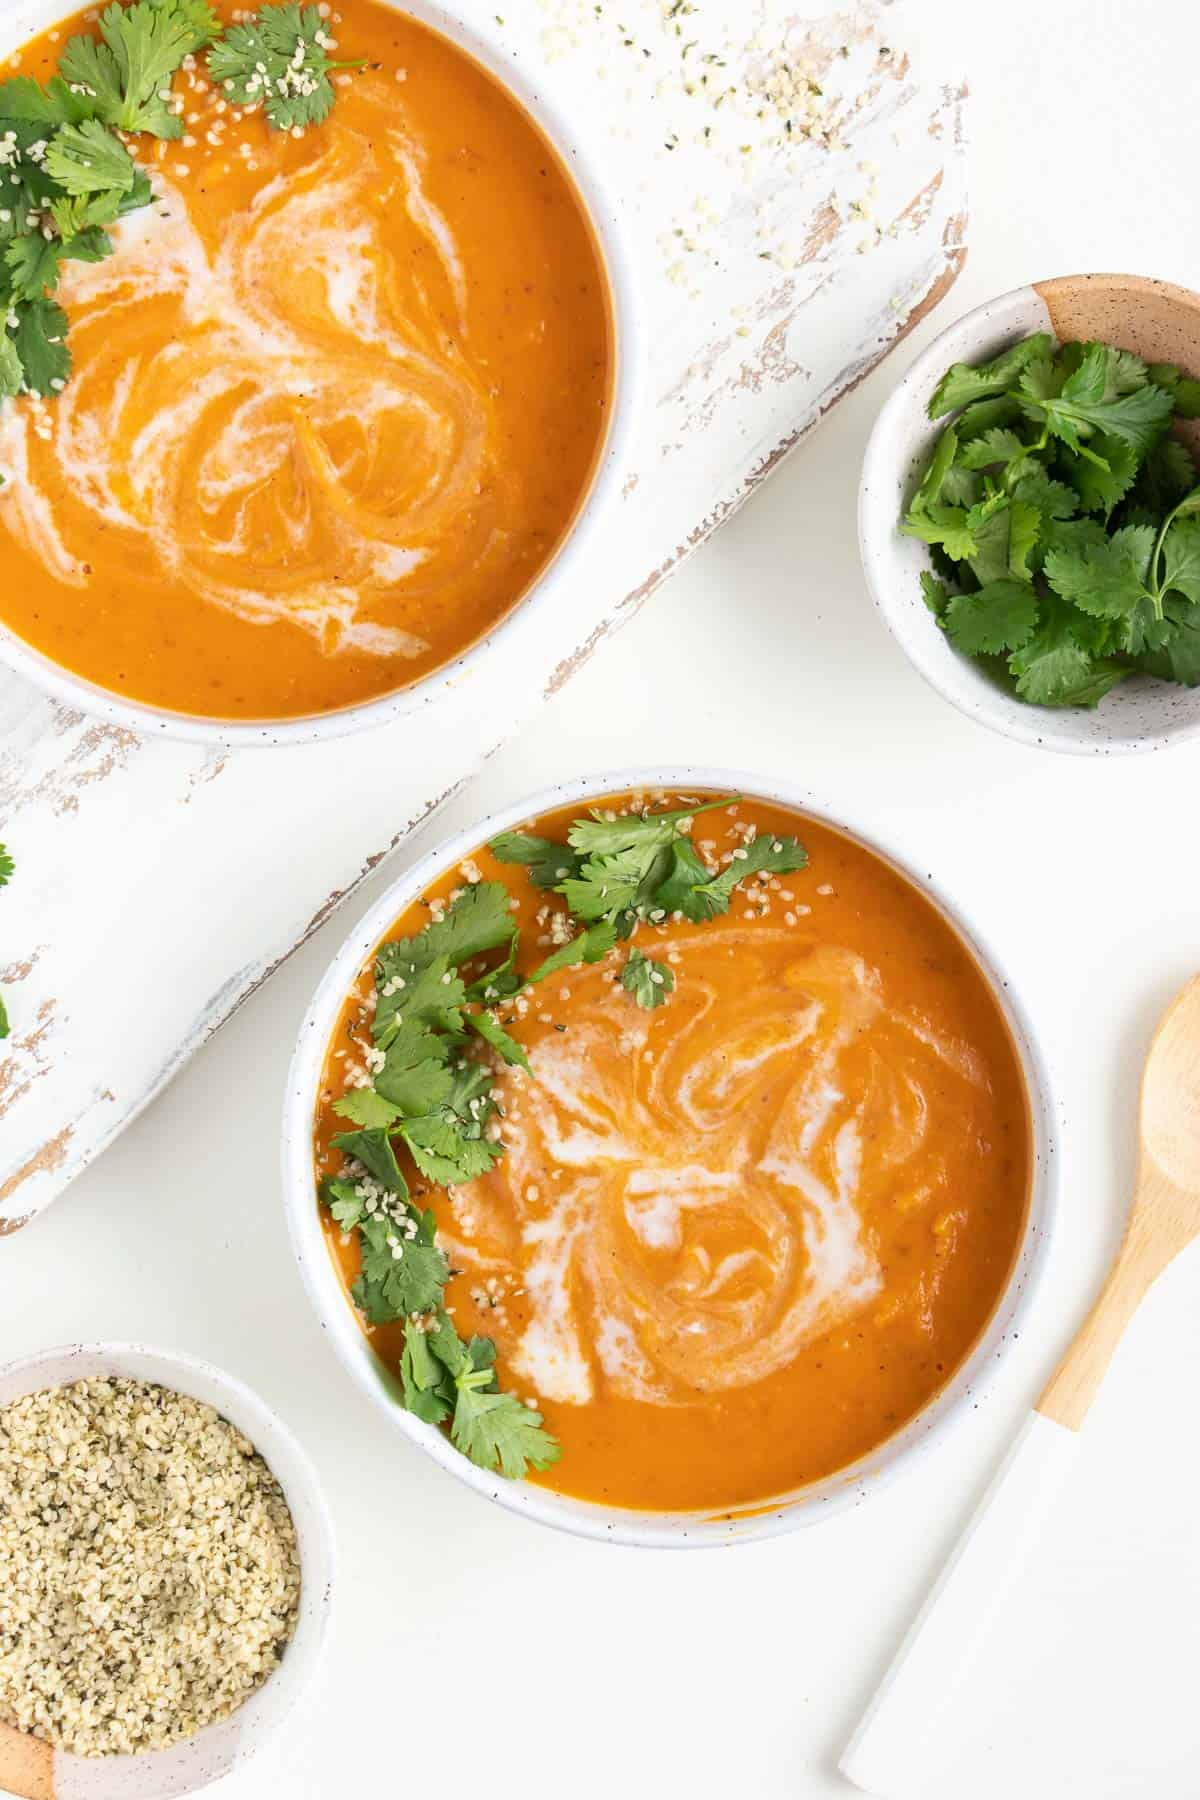 sweet potato soup inside two white bowls beside wooden spoon, a bowl of hemp seeds, and a bowl of cilantro